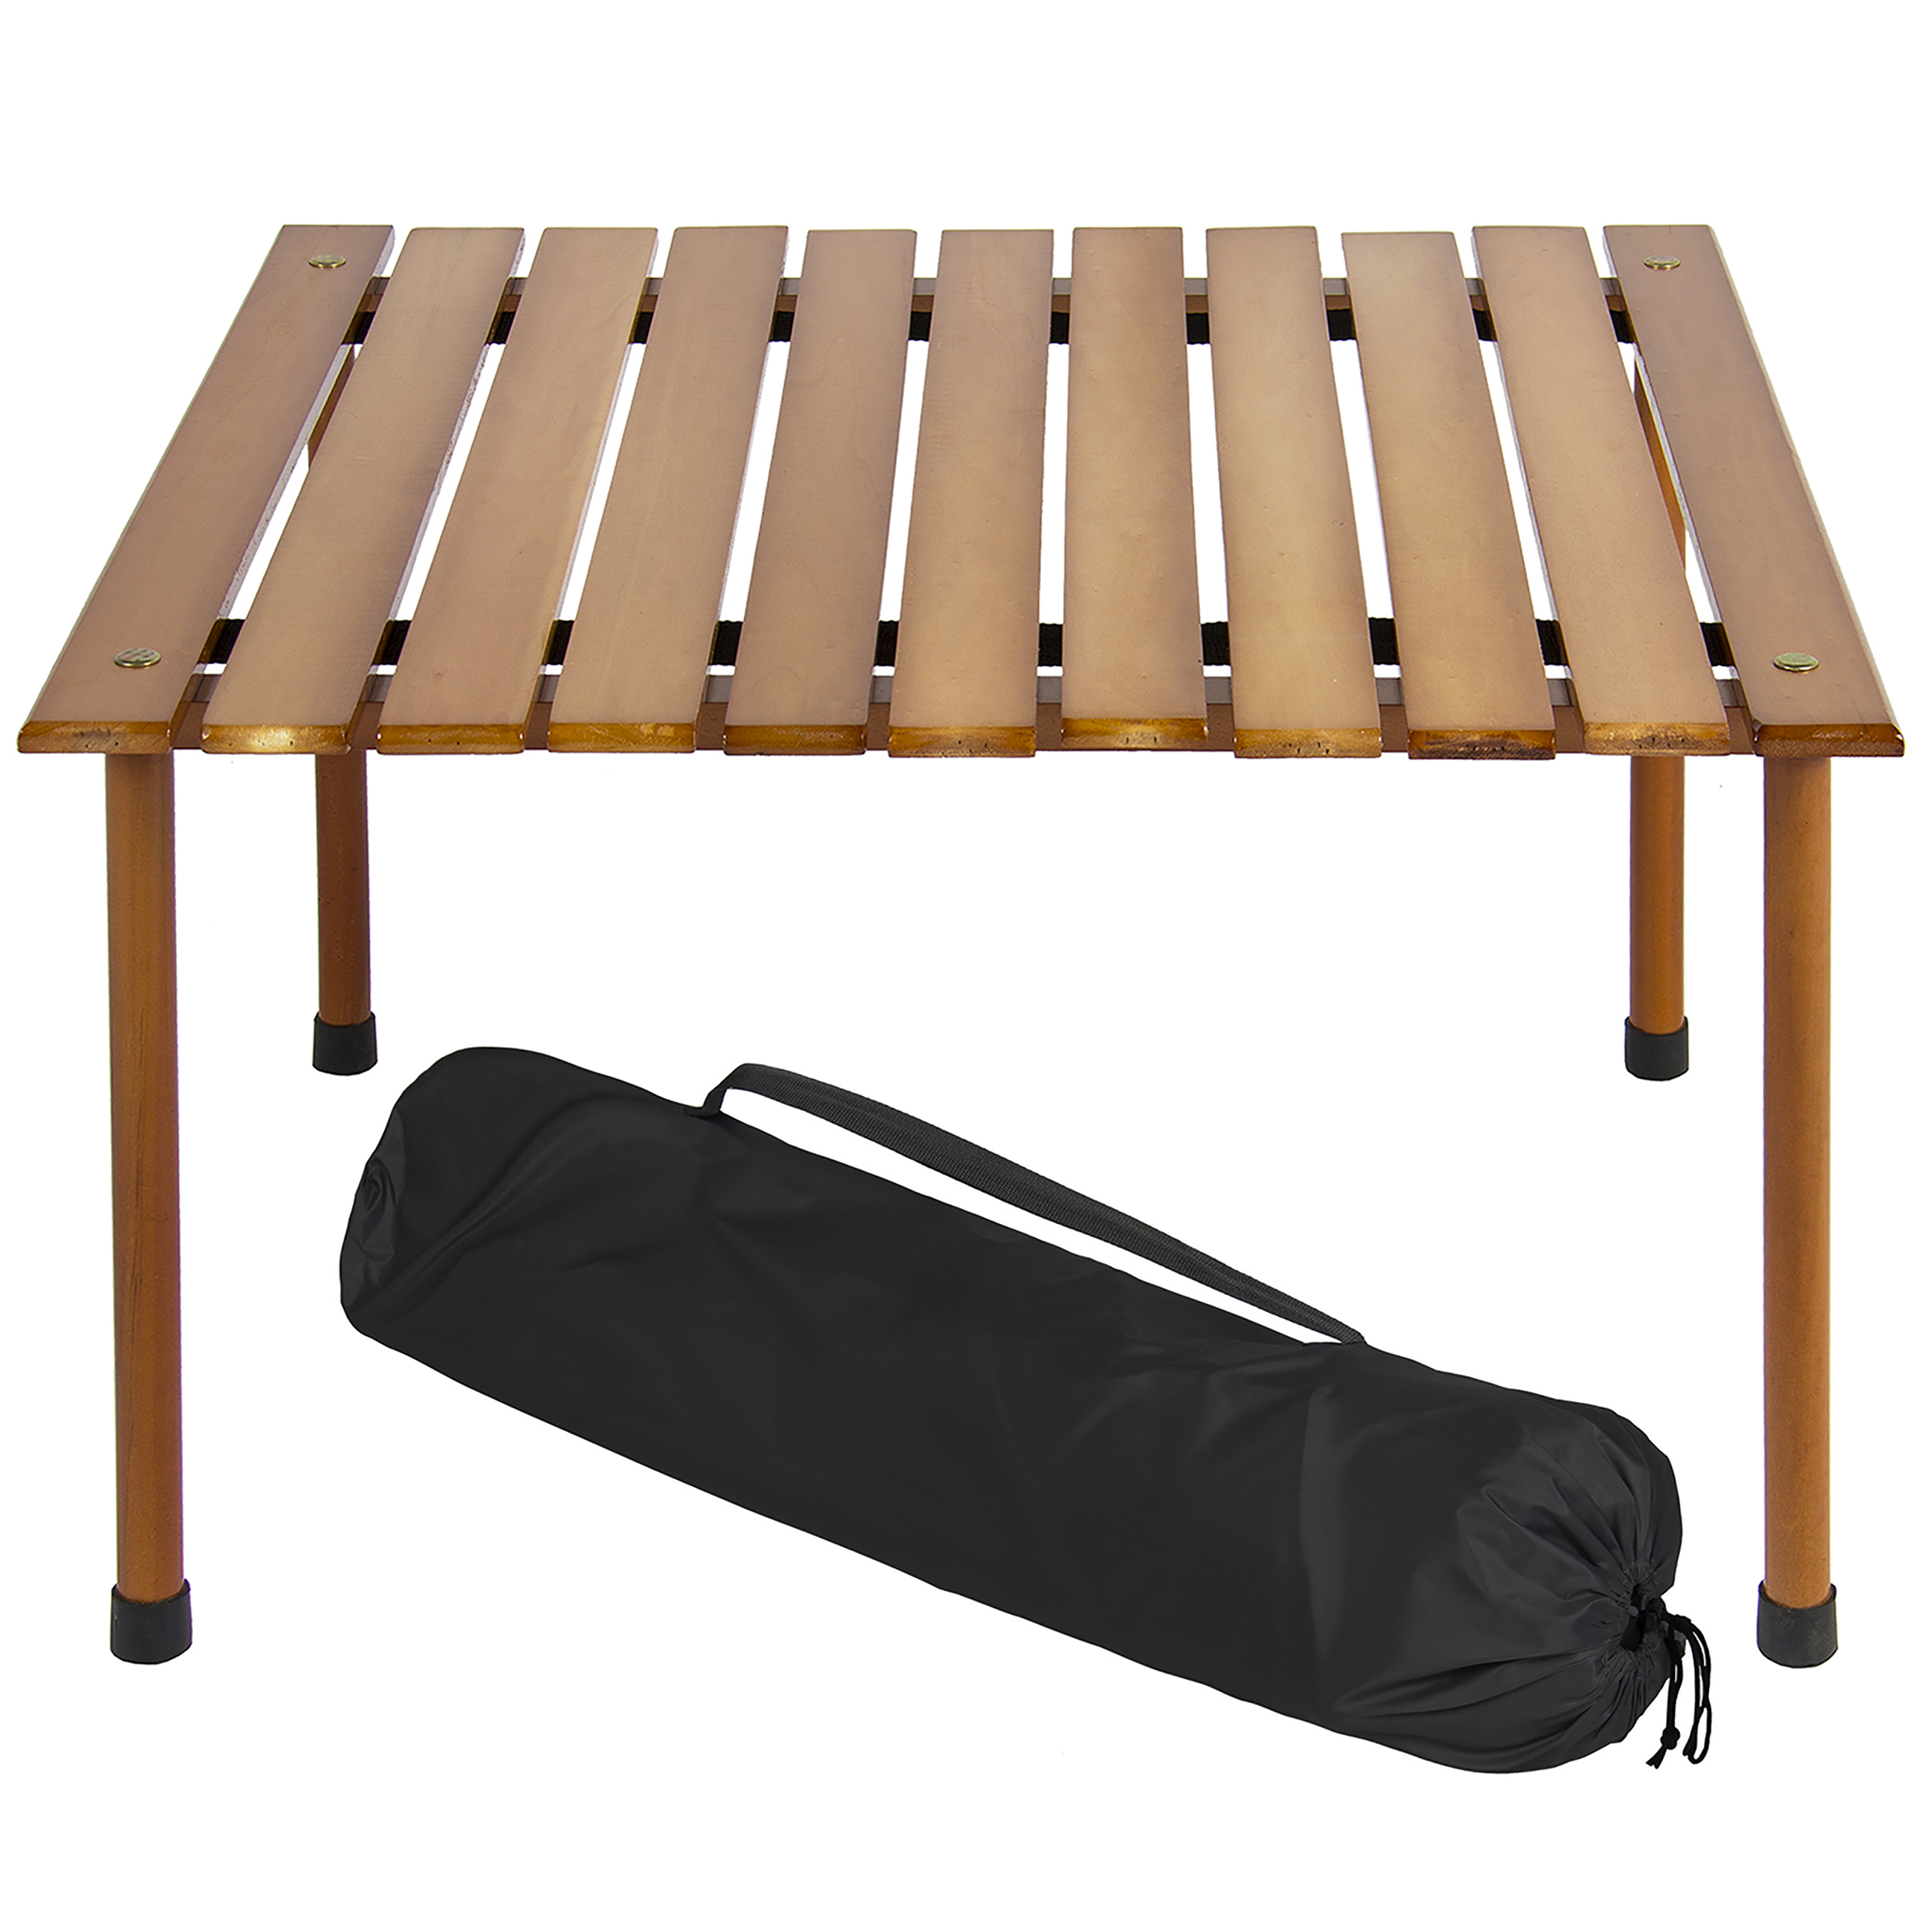 Best Choice Products Foldable Portable Wooden Table For Picnic, Camping,  Beach, Patio Furniture